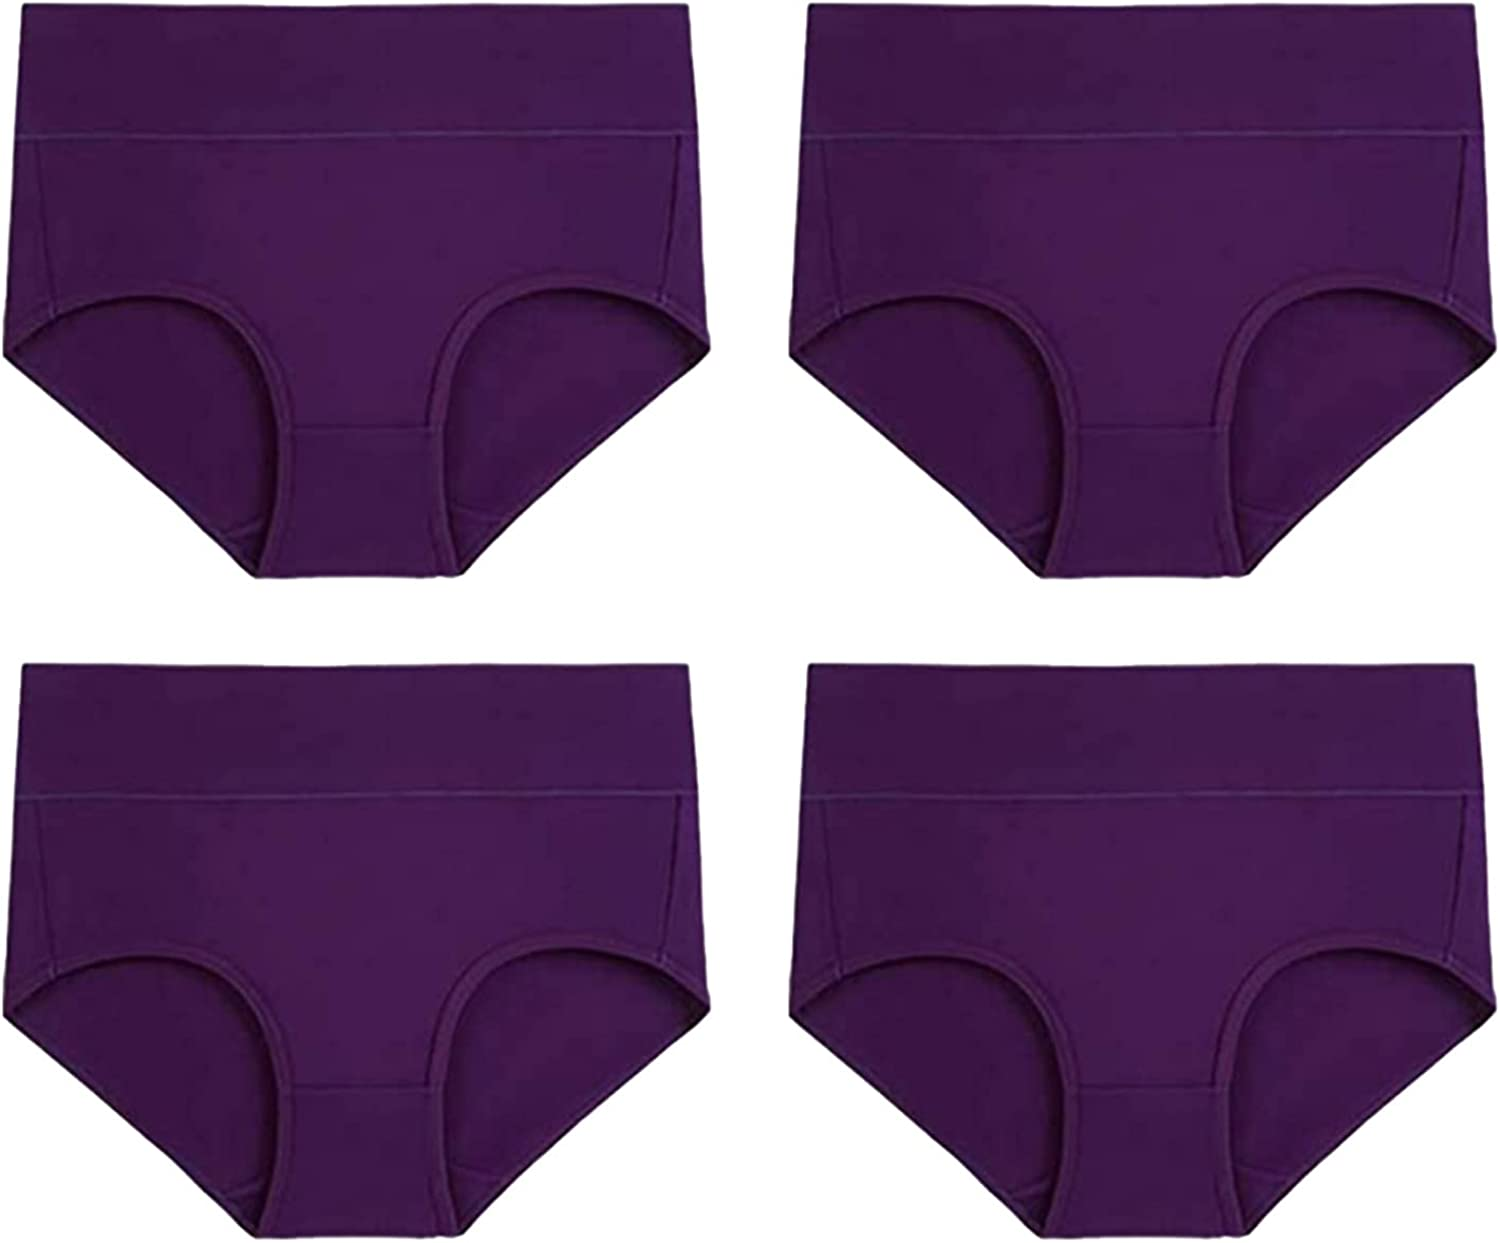 Intimates for Women, Women's High Waisted Cotton Underwear Stretch Briefs Soft Full Coverage Panties